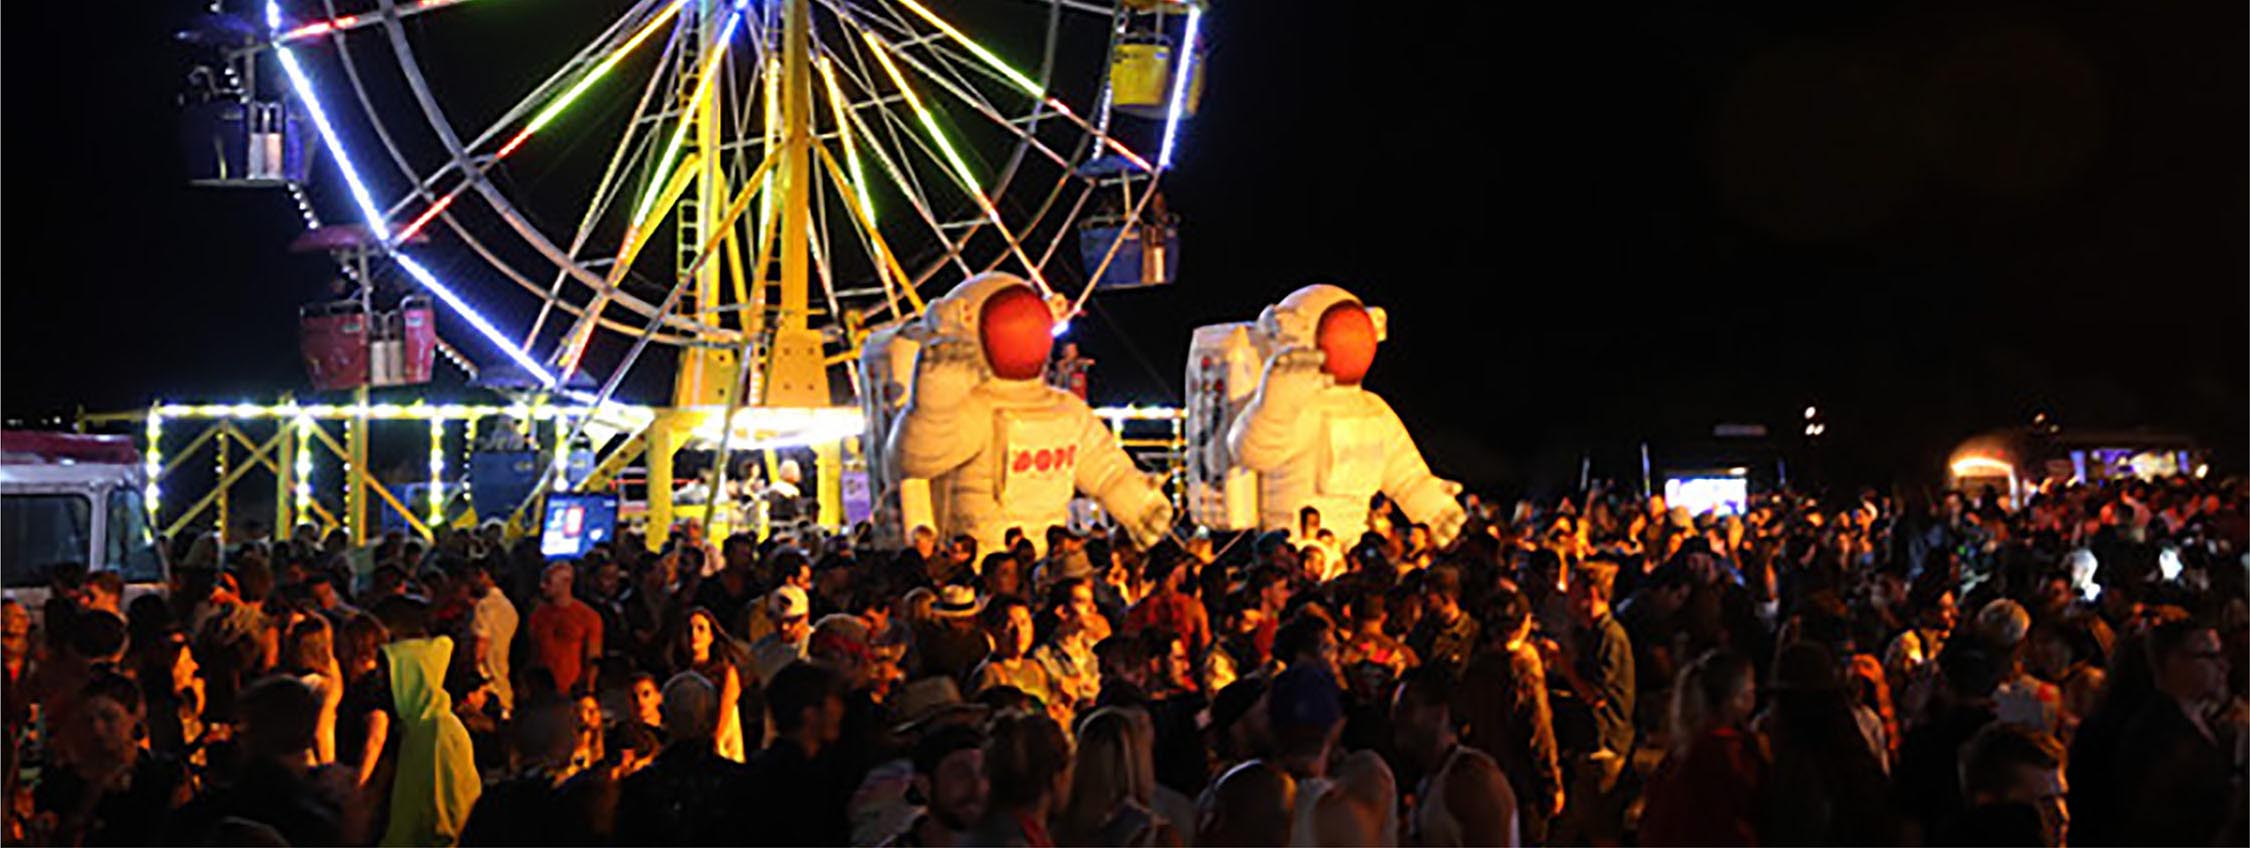 inflatable astronauts installed at a music festival as decorations